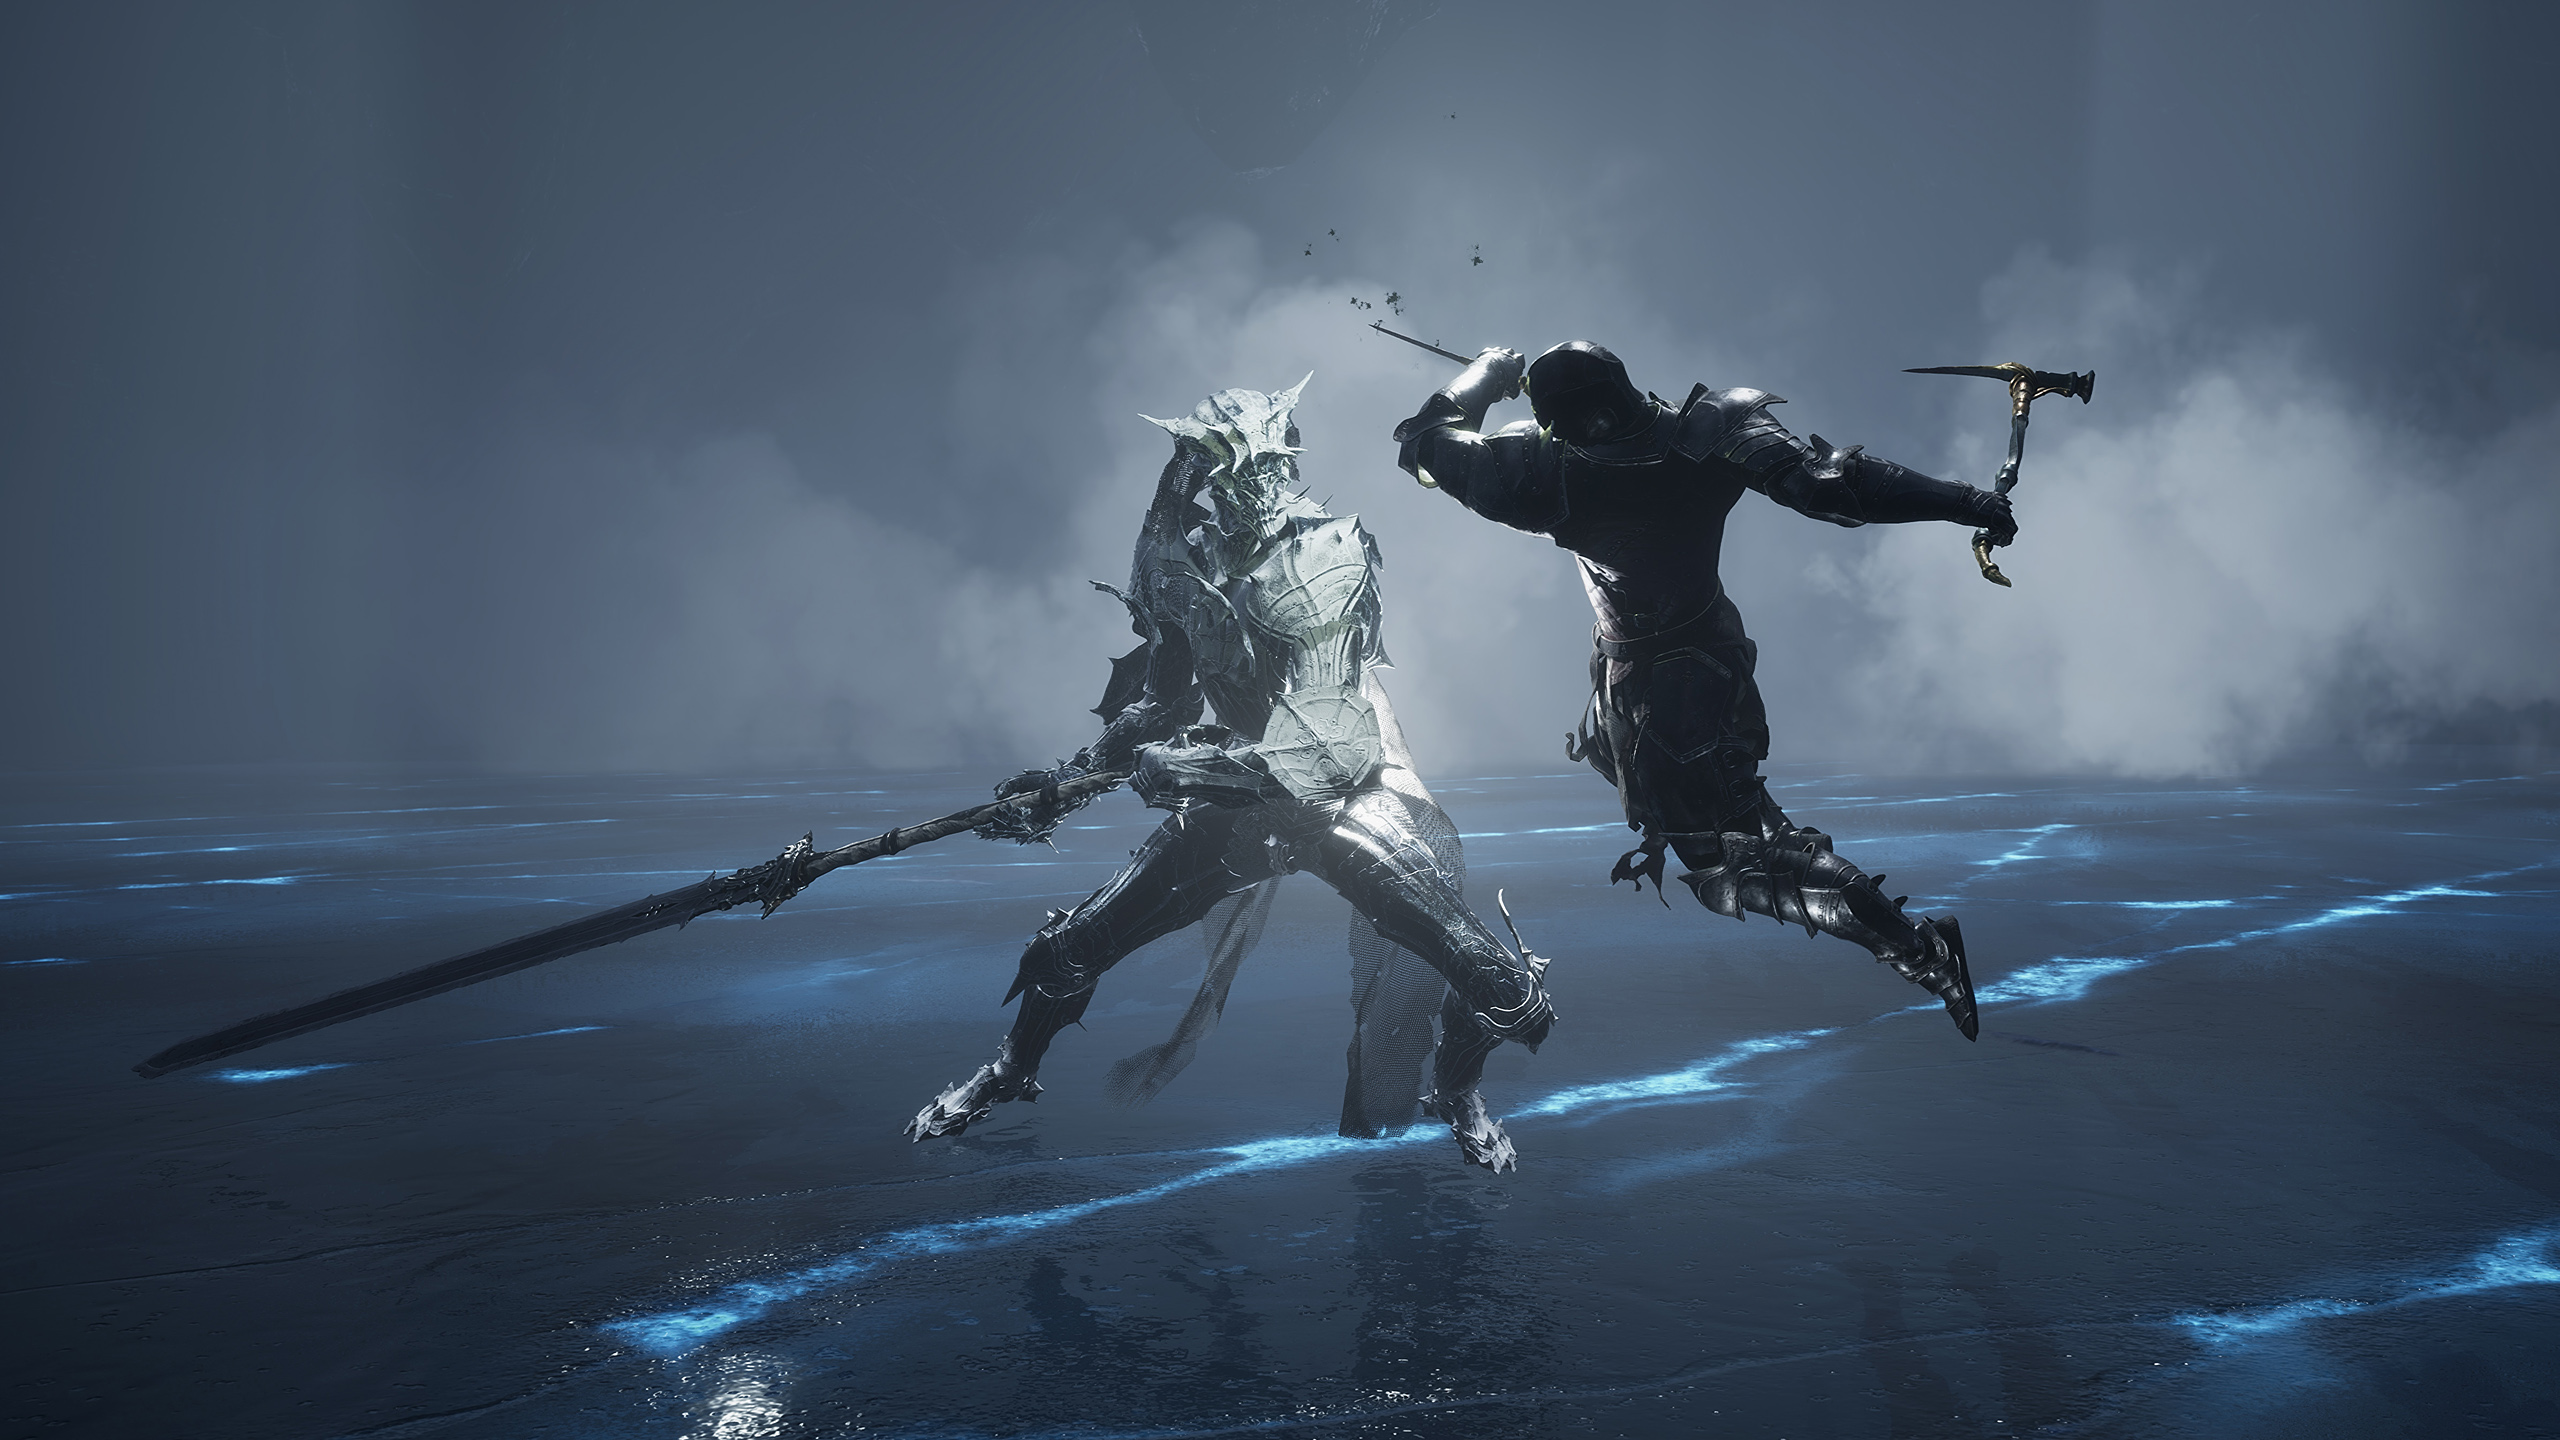 A warrior takes a running jump at an enemy with a huge sword